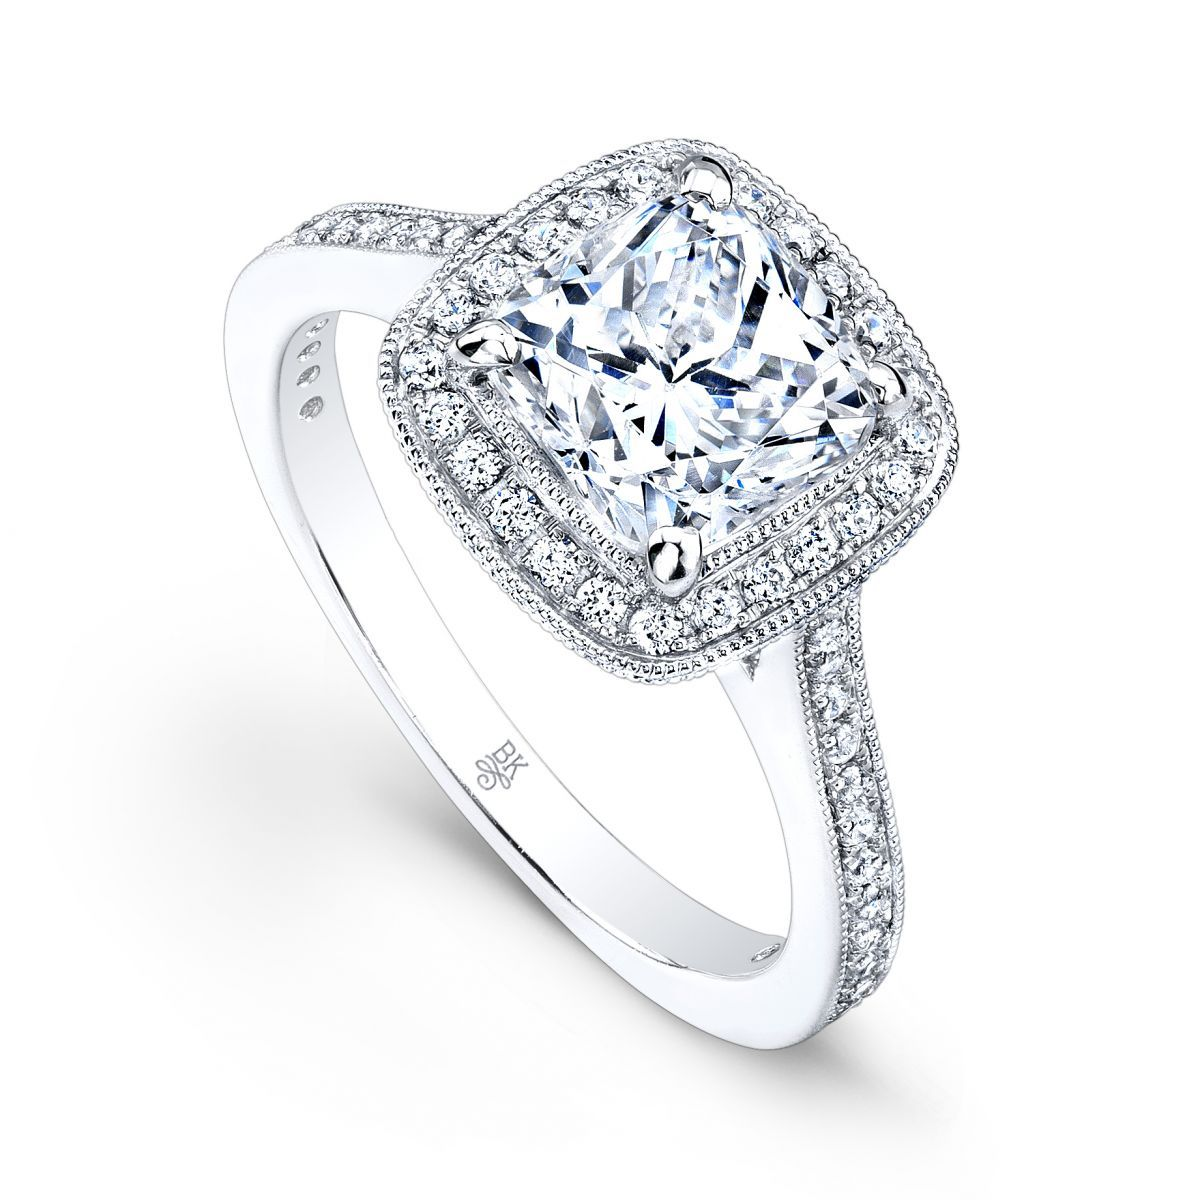 Beverley K Vintage Inspired Engagement Ring Featuring Beautiful Hand  Engraved Details And Diamond Accents This